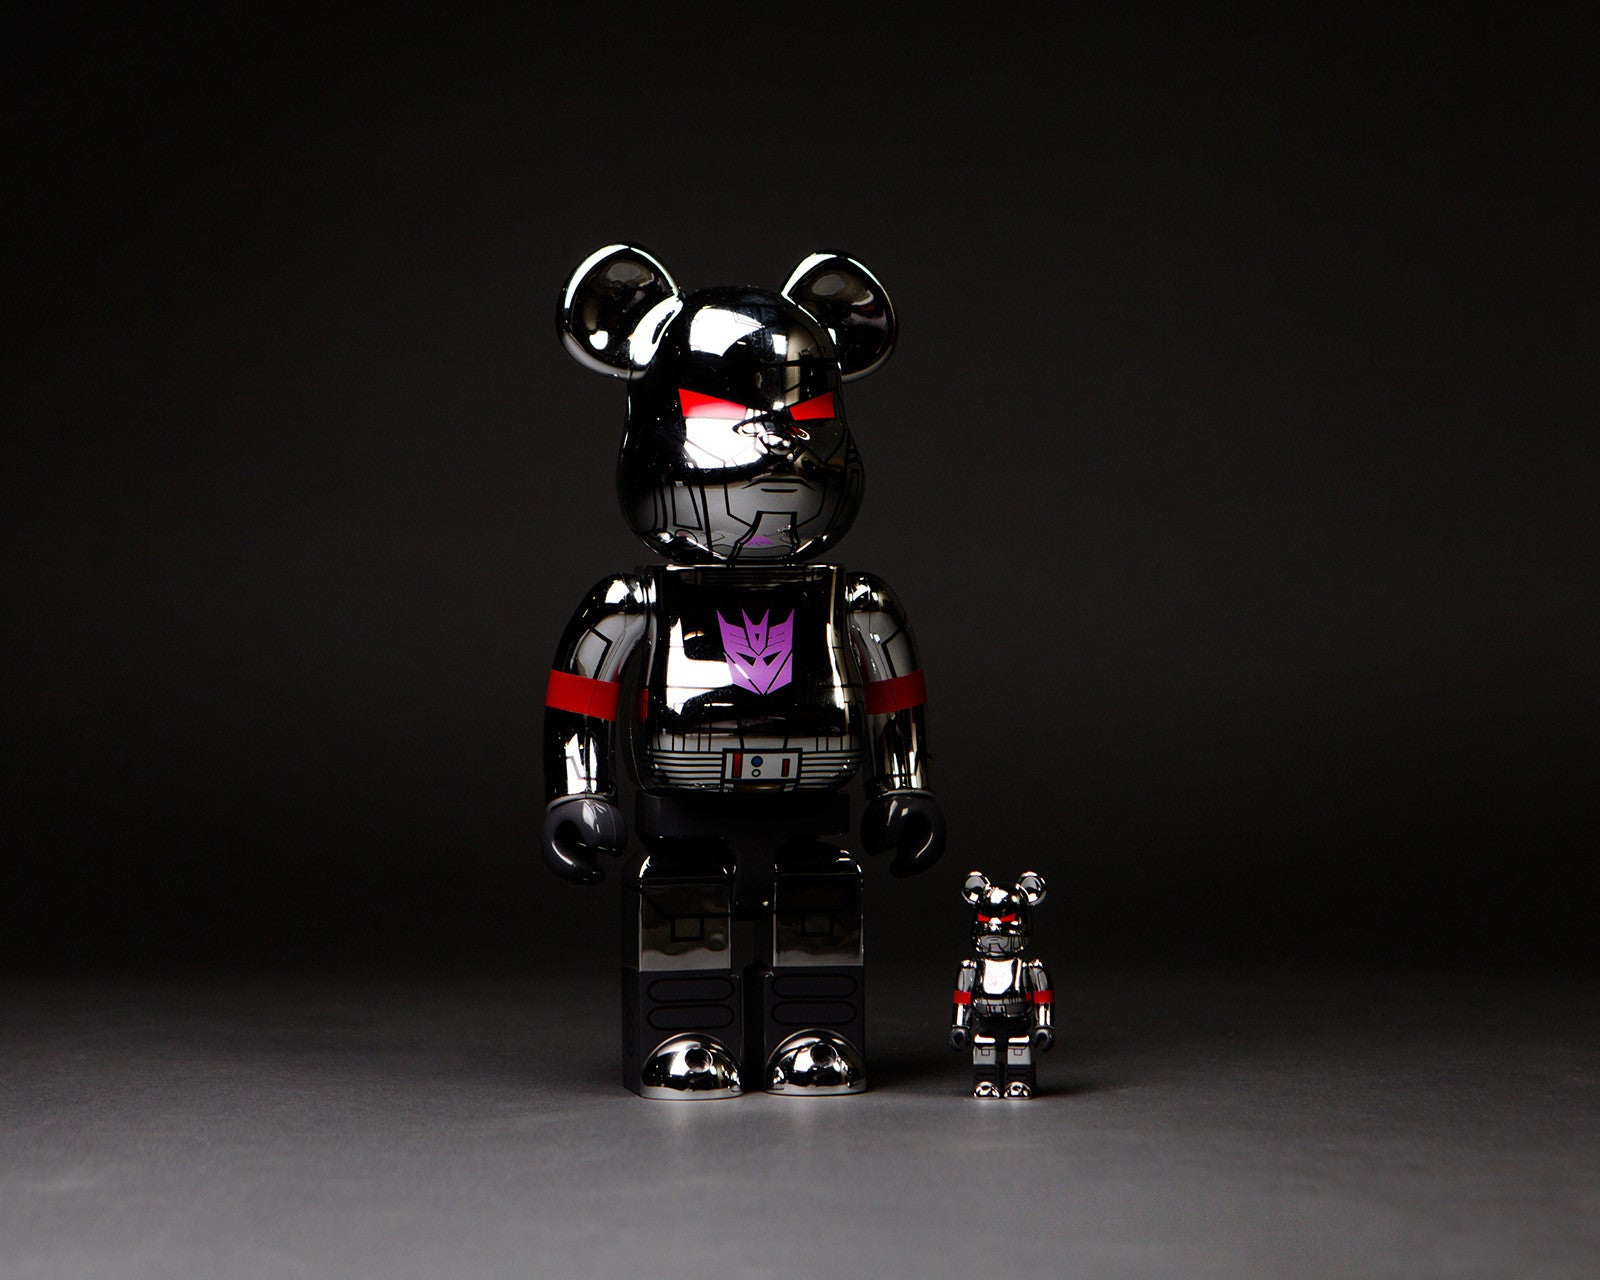 SDCC 2017 Be@rbrick Exclusive: Medicom Toy x Bait - Transformers G1 Megatron Bearbrick